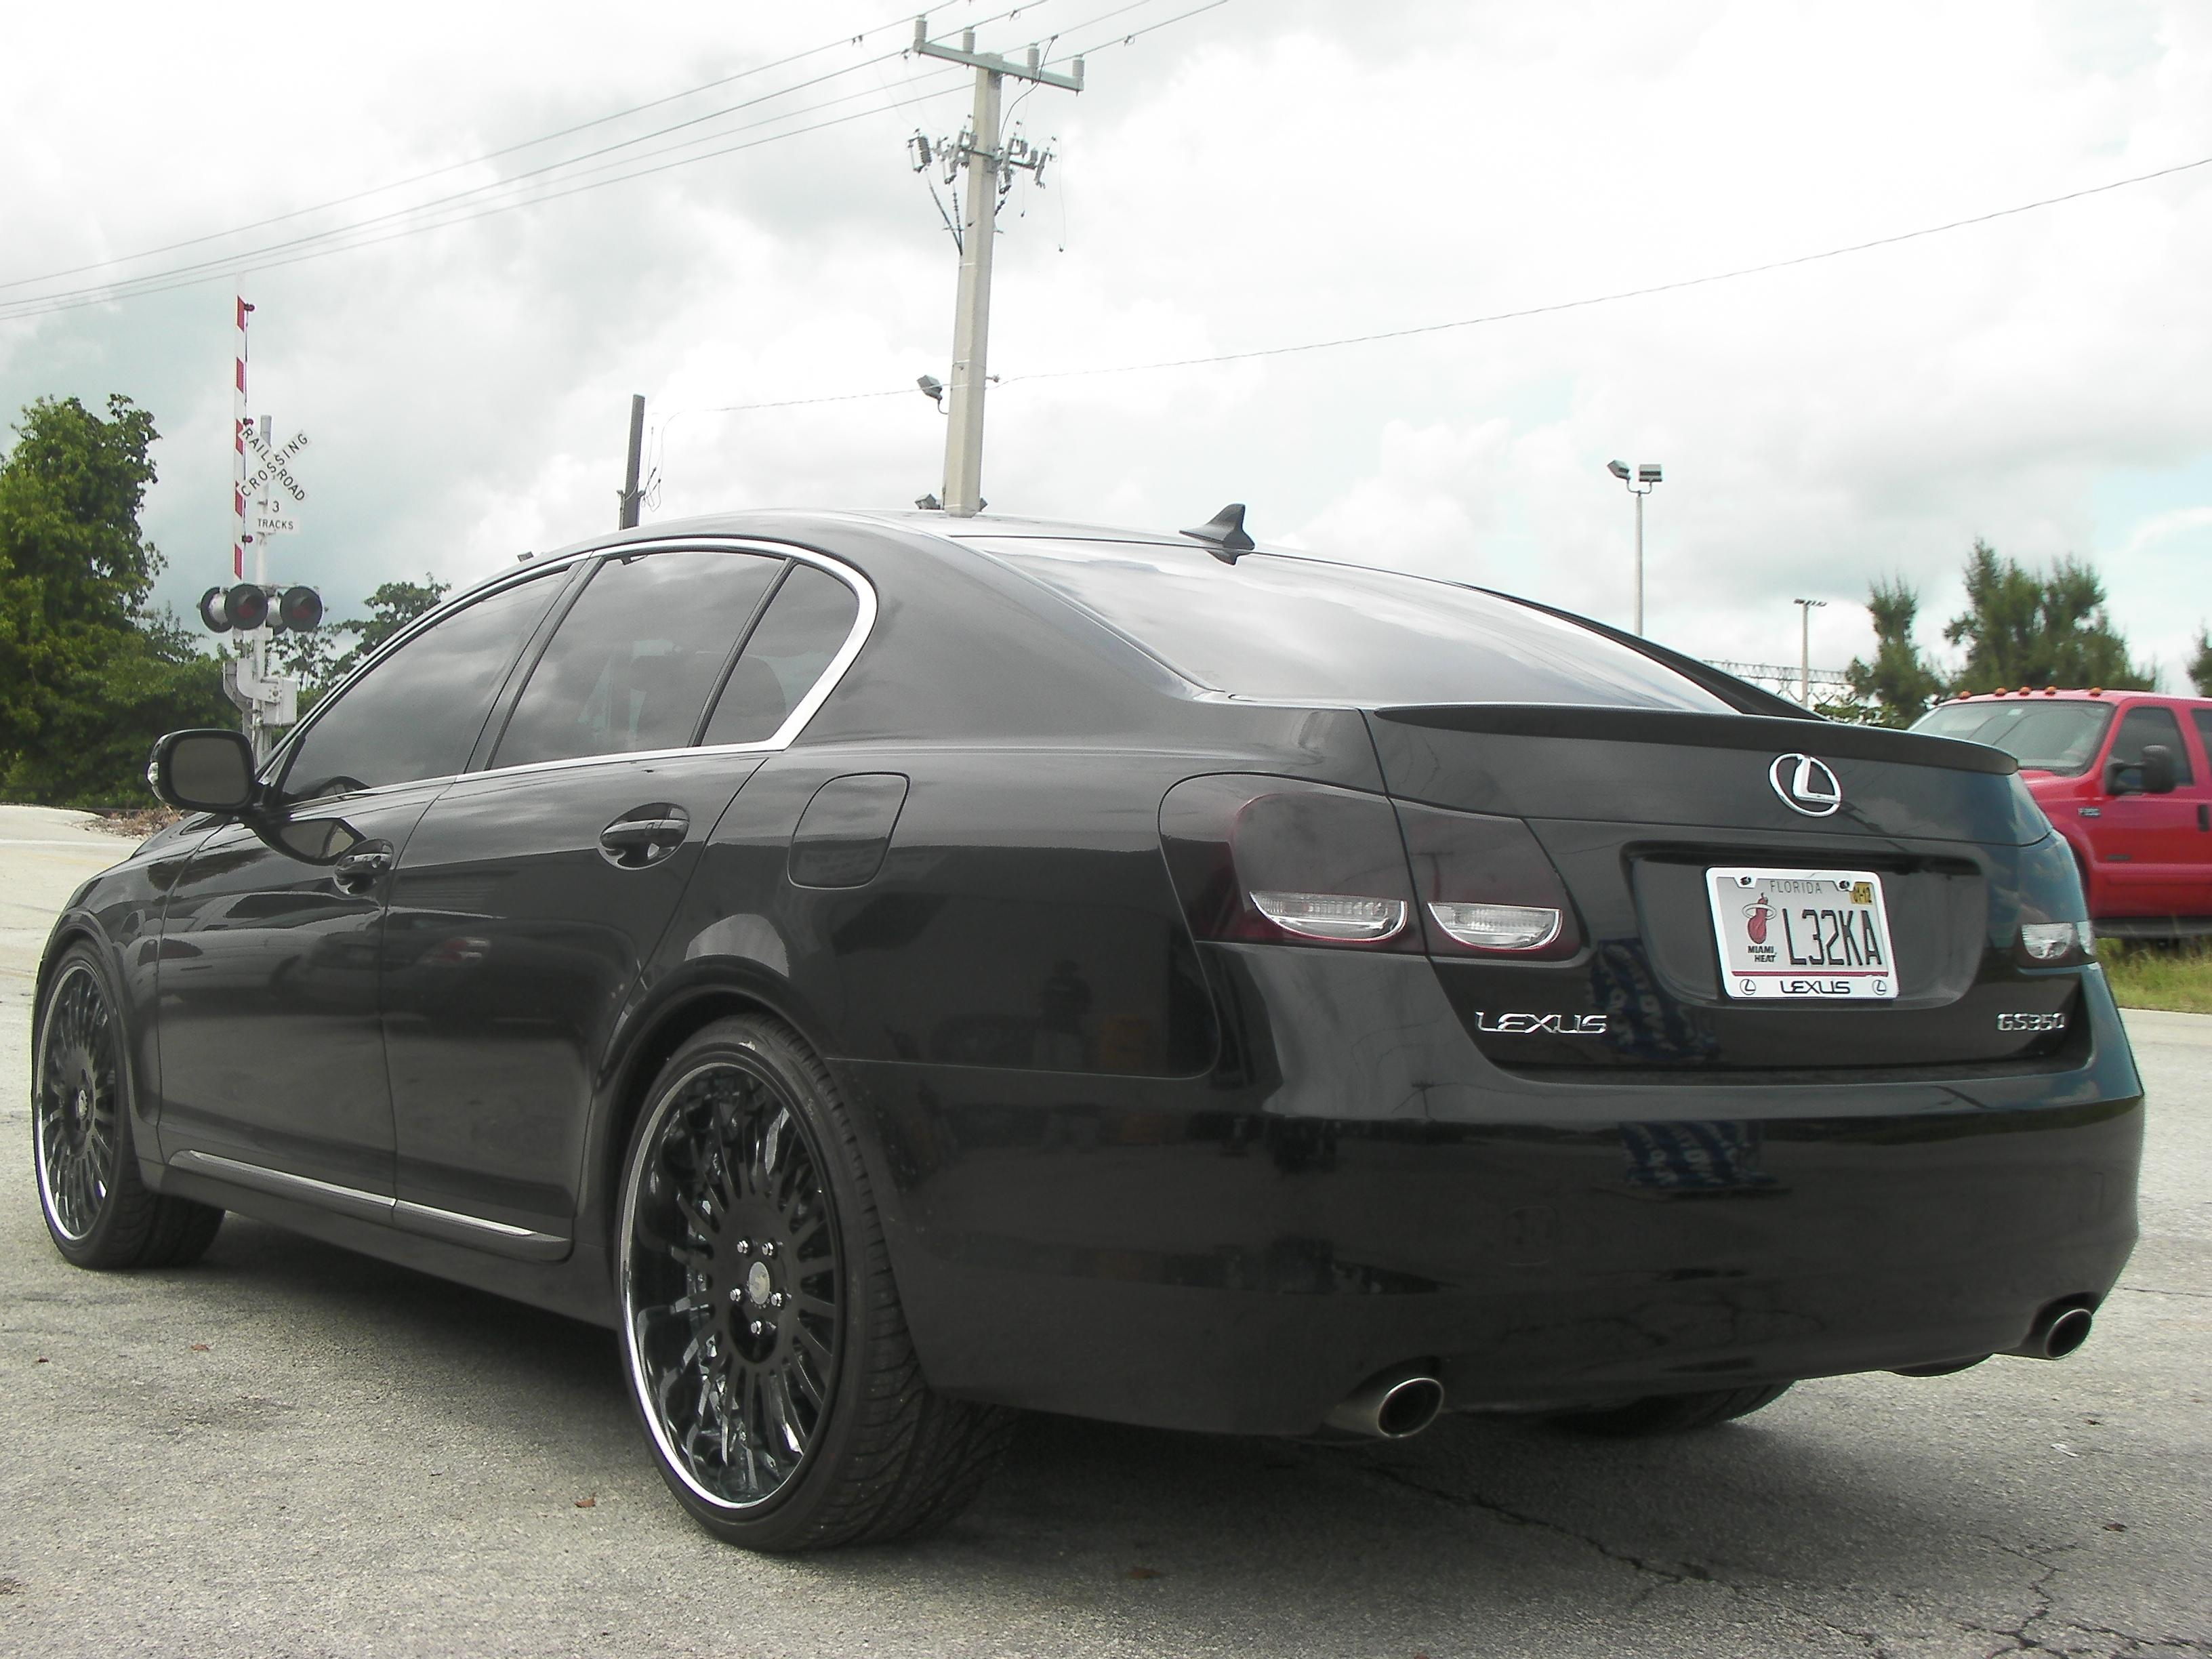 cars gs modern right family and silver limousine news of front car model lexus tuning